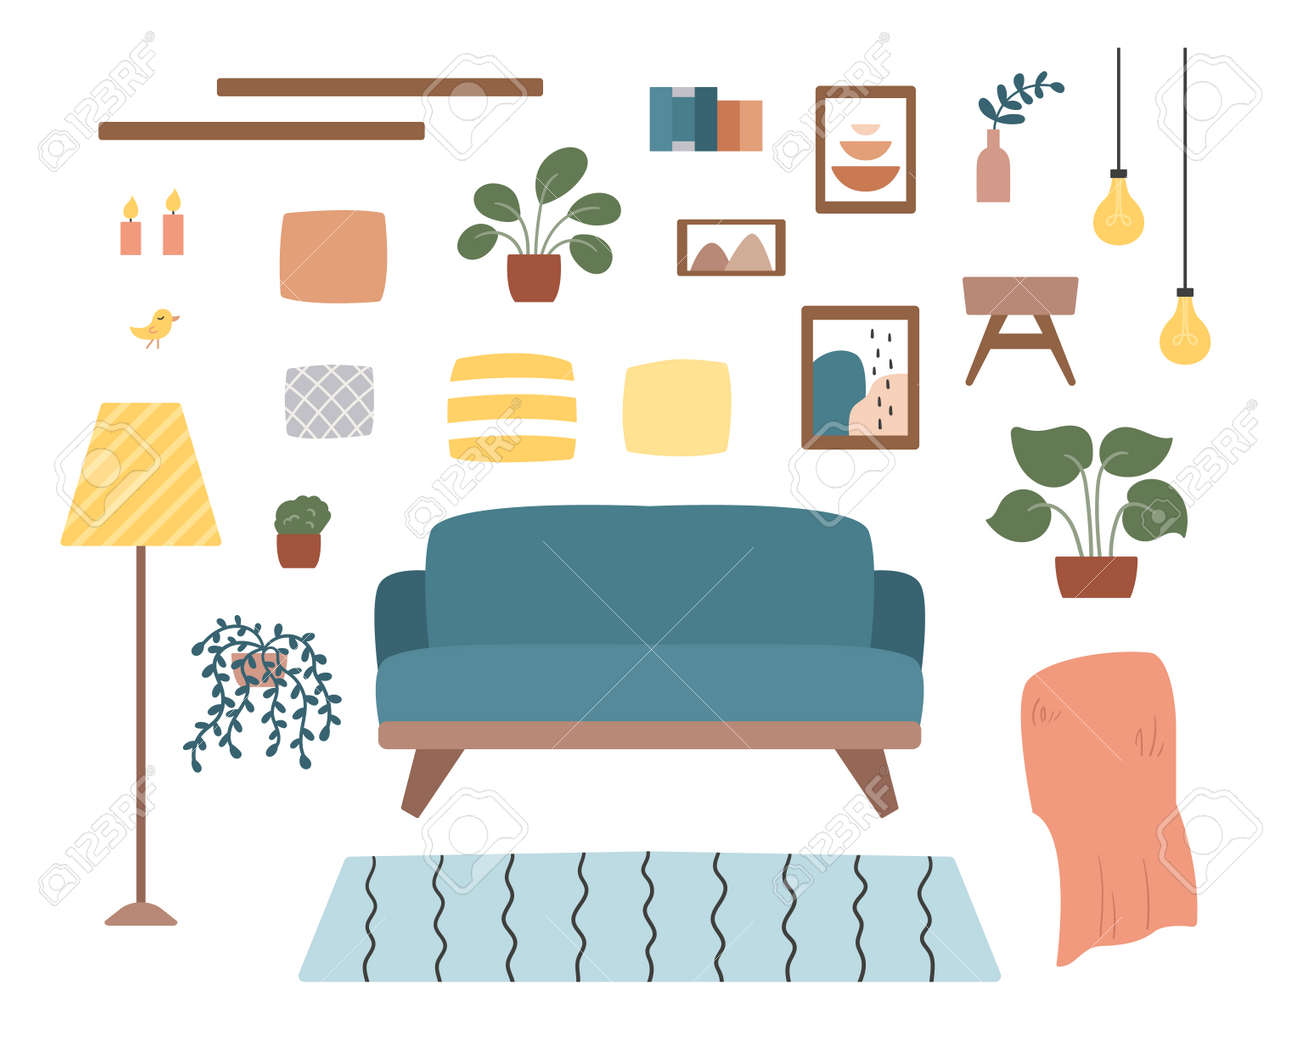 Cozy living room set with furniture, plants and decorations. Hand drawn doodle icons. Scandinavian hygge style. Trendy pastel colors. - 165695090